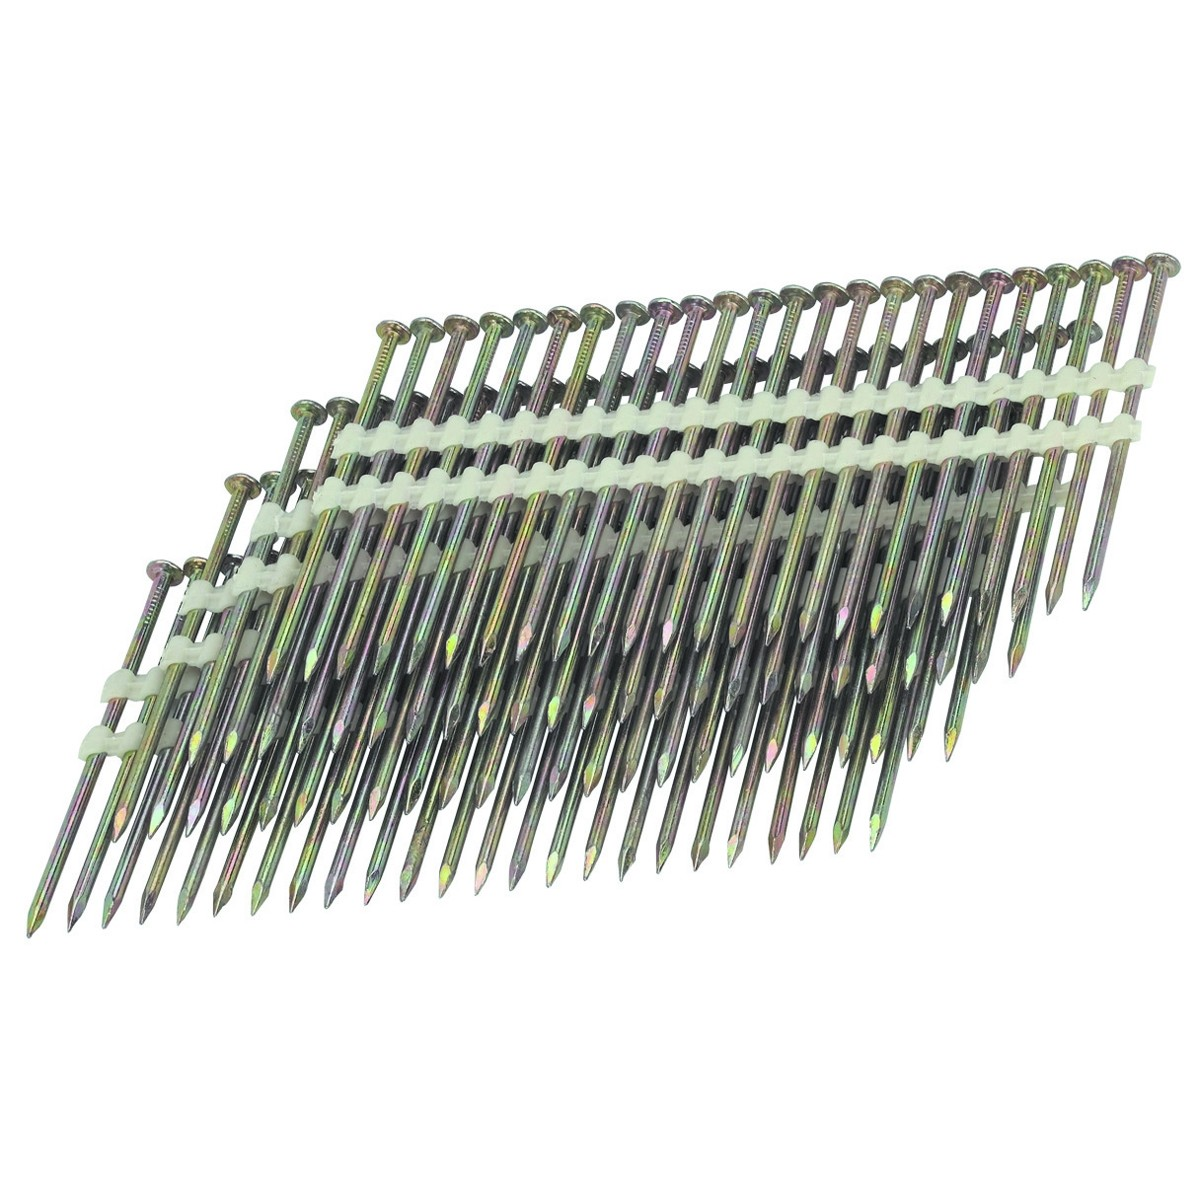 21 3-1/4 in. 10 Gauge Galvanized Smooth Shank Nails 2000 Pc